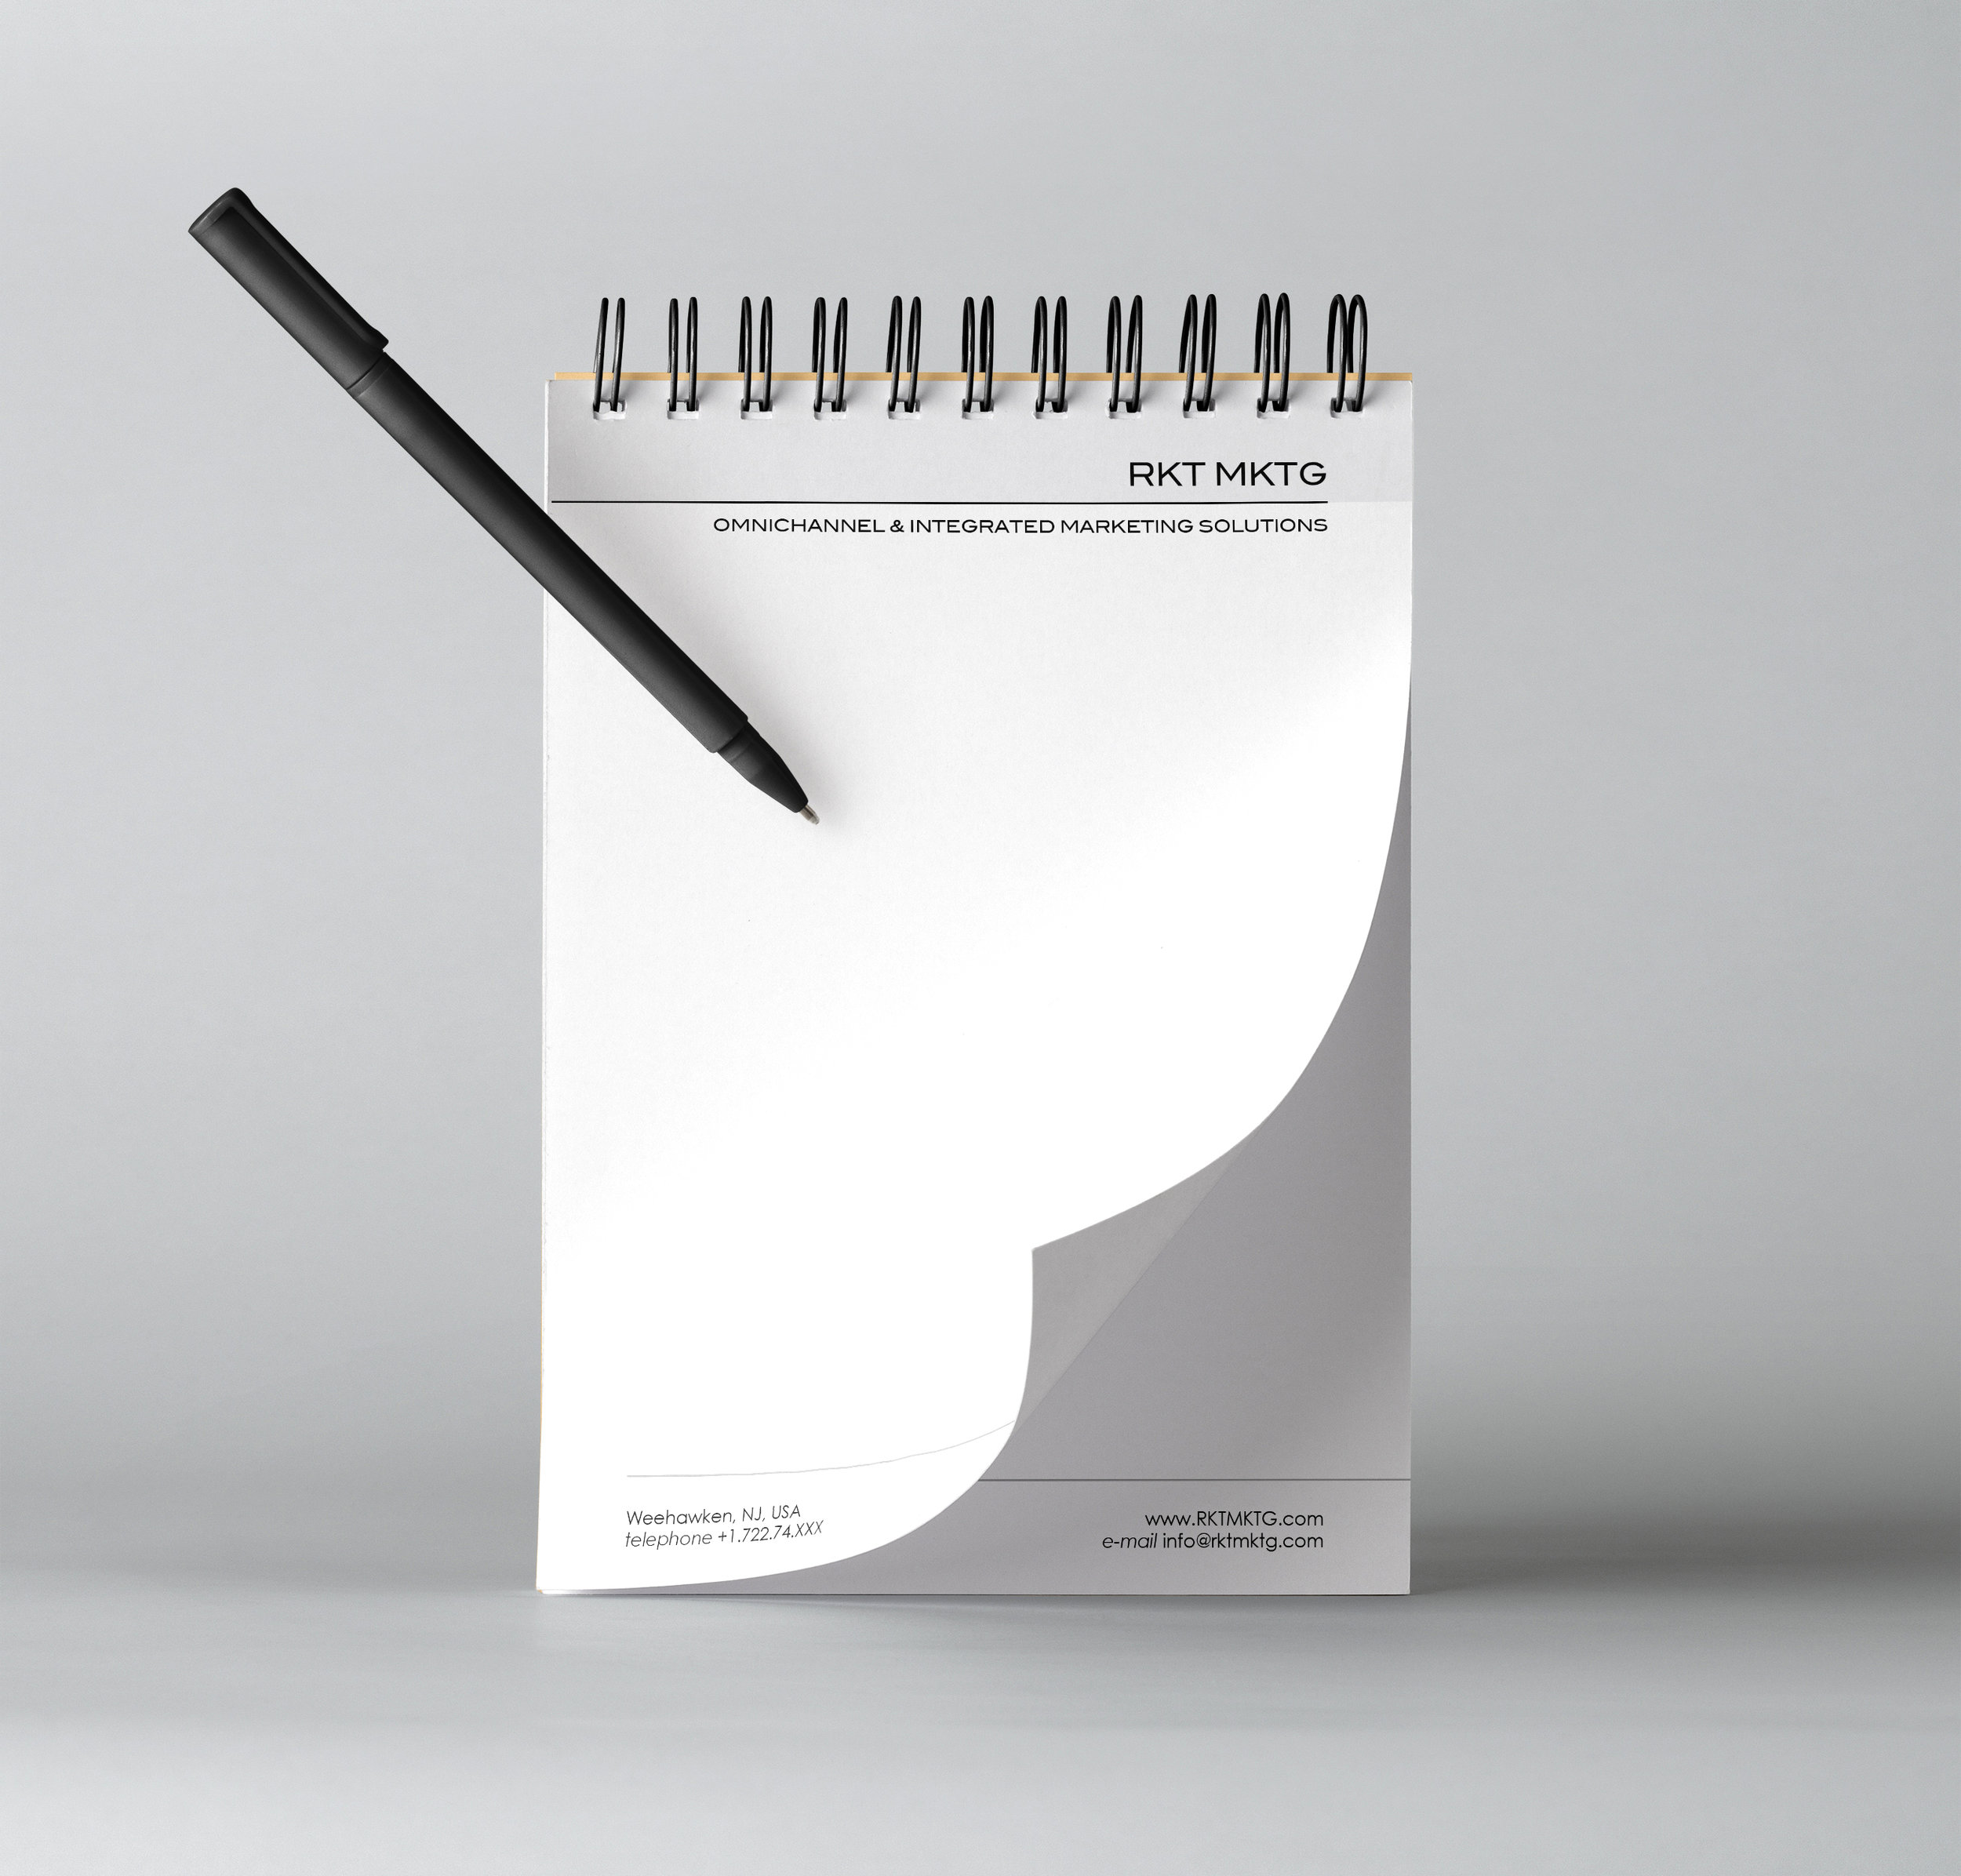 Notepad design. The same page layout was used for the letterhead.